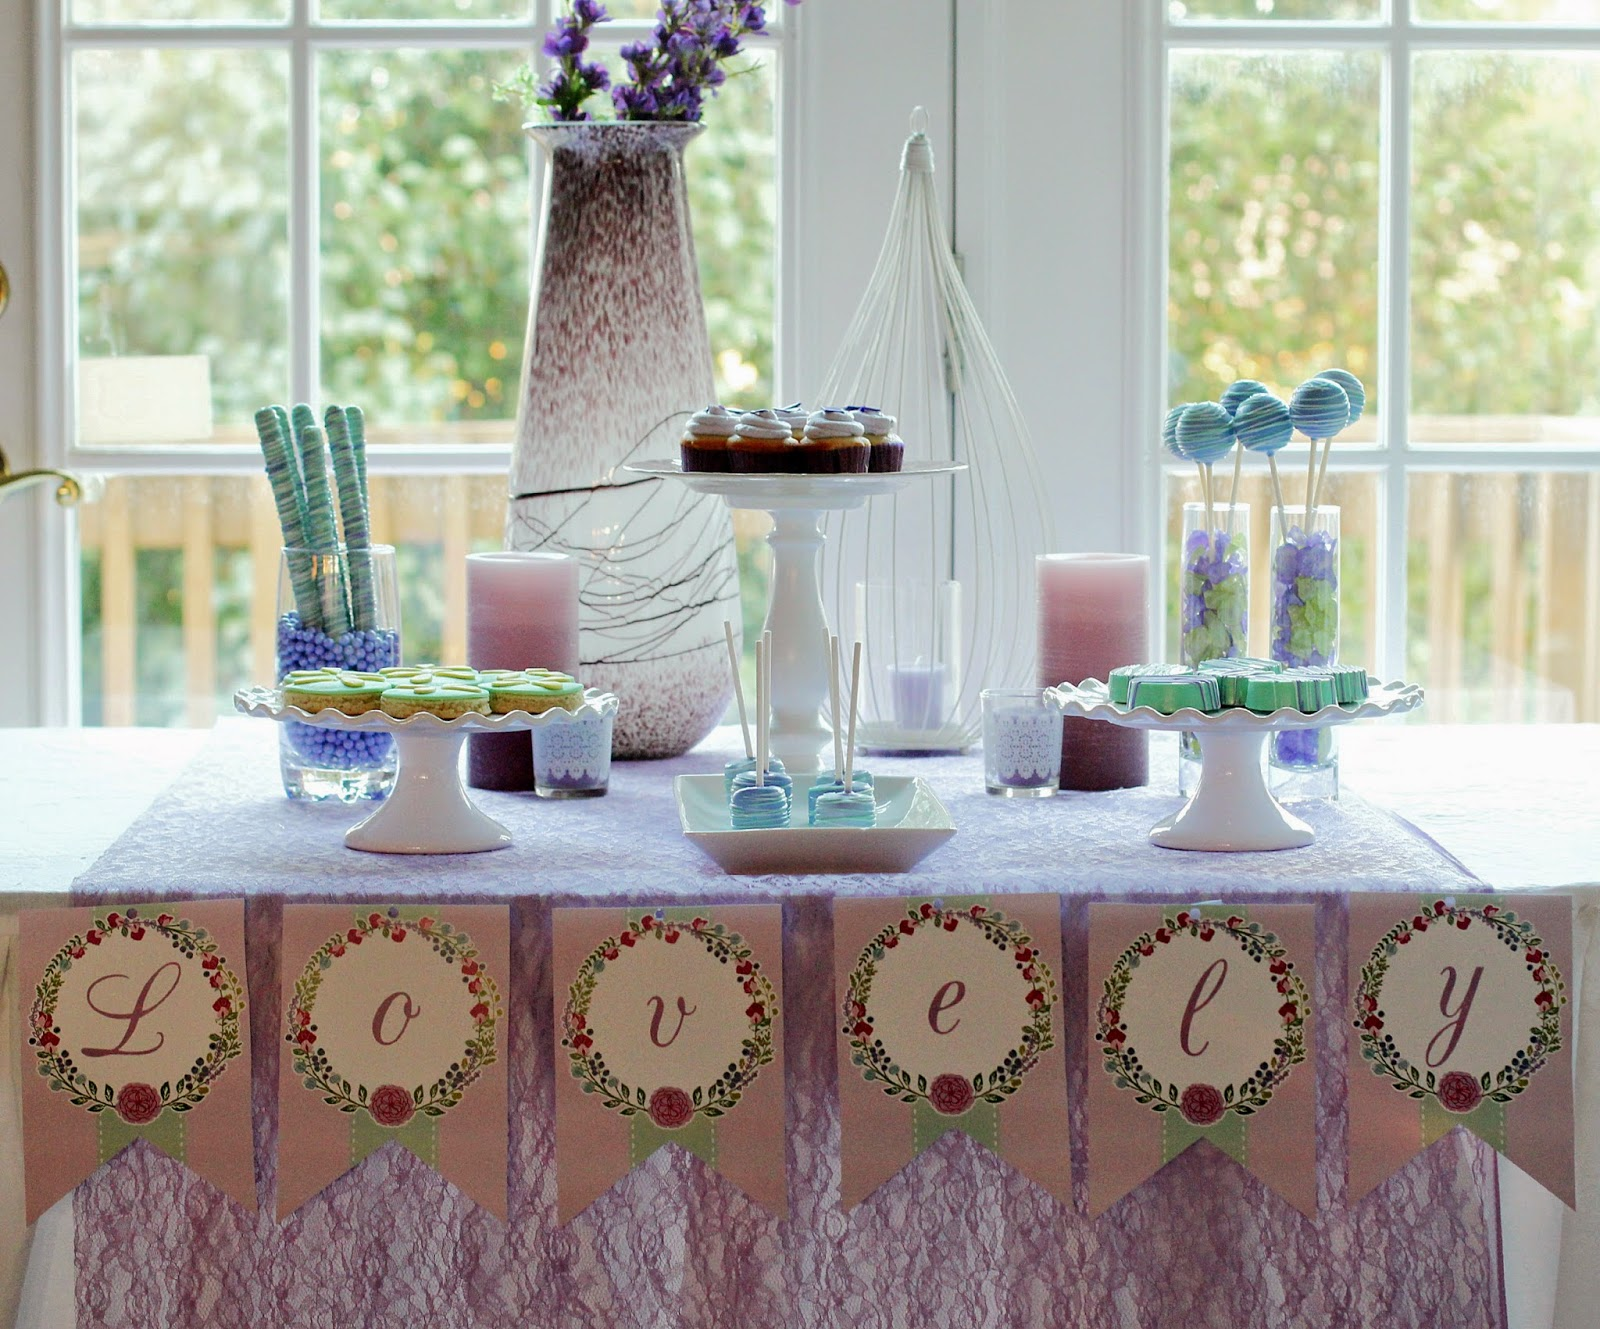 Lavender and mint dessert table ideas from playpartypin.com